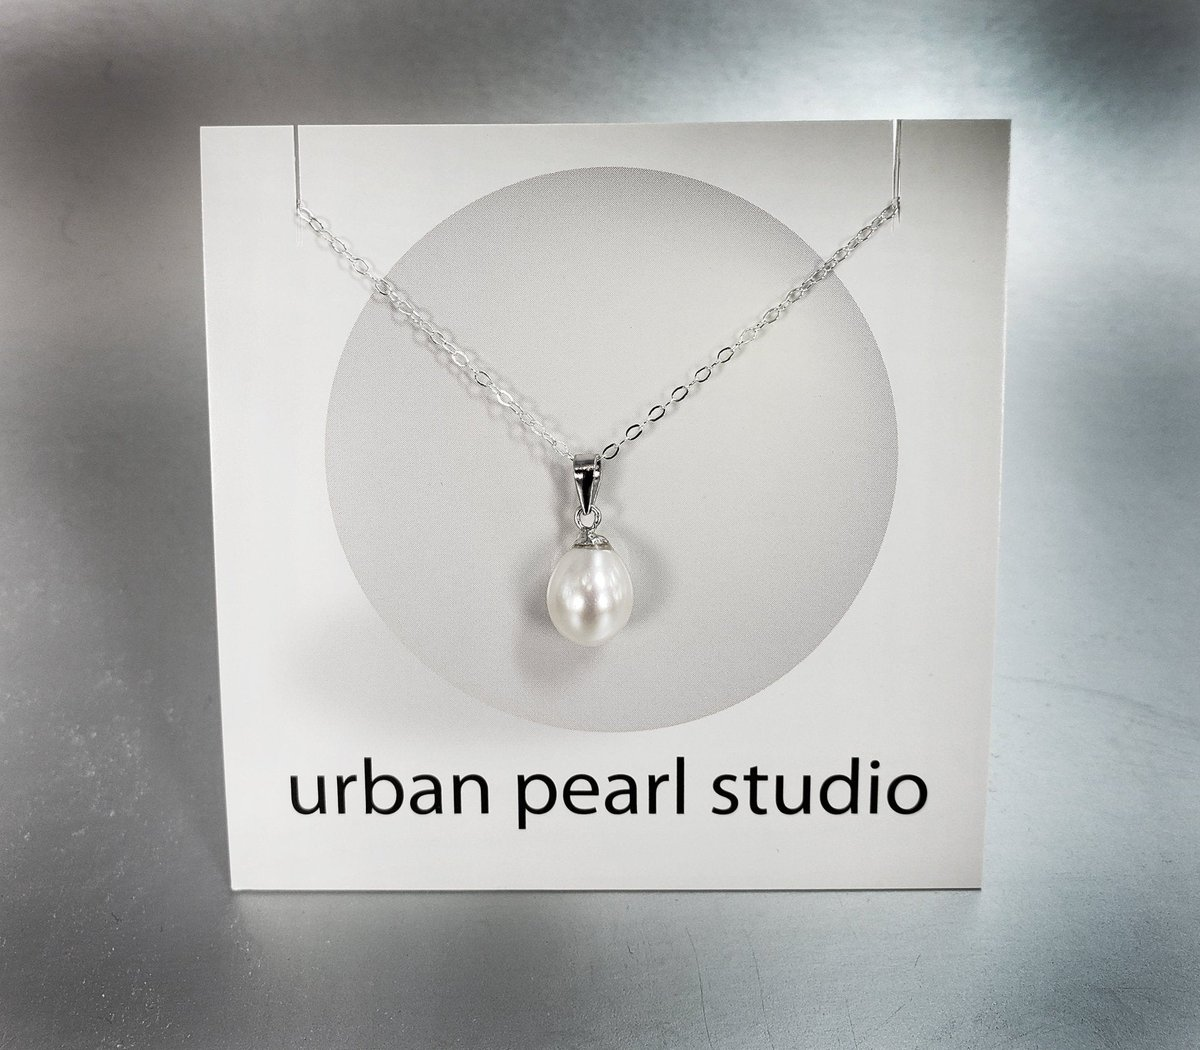 Pearl Necklace Pearl Pendant On 18 Inch Silver Chain PN450  #handmade #giftsforher #etsy #pearlnecklace #lovejewelry #handmadejewelry